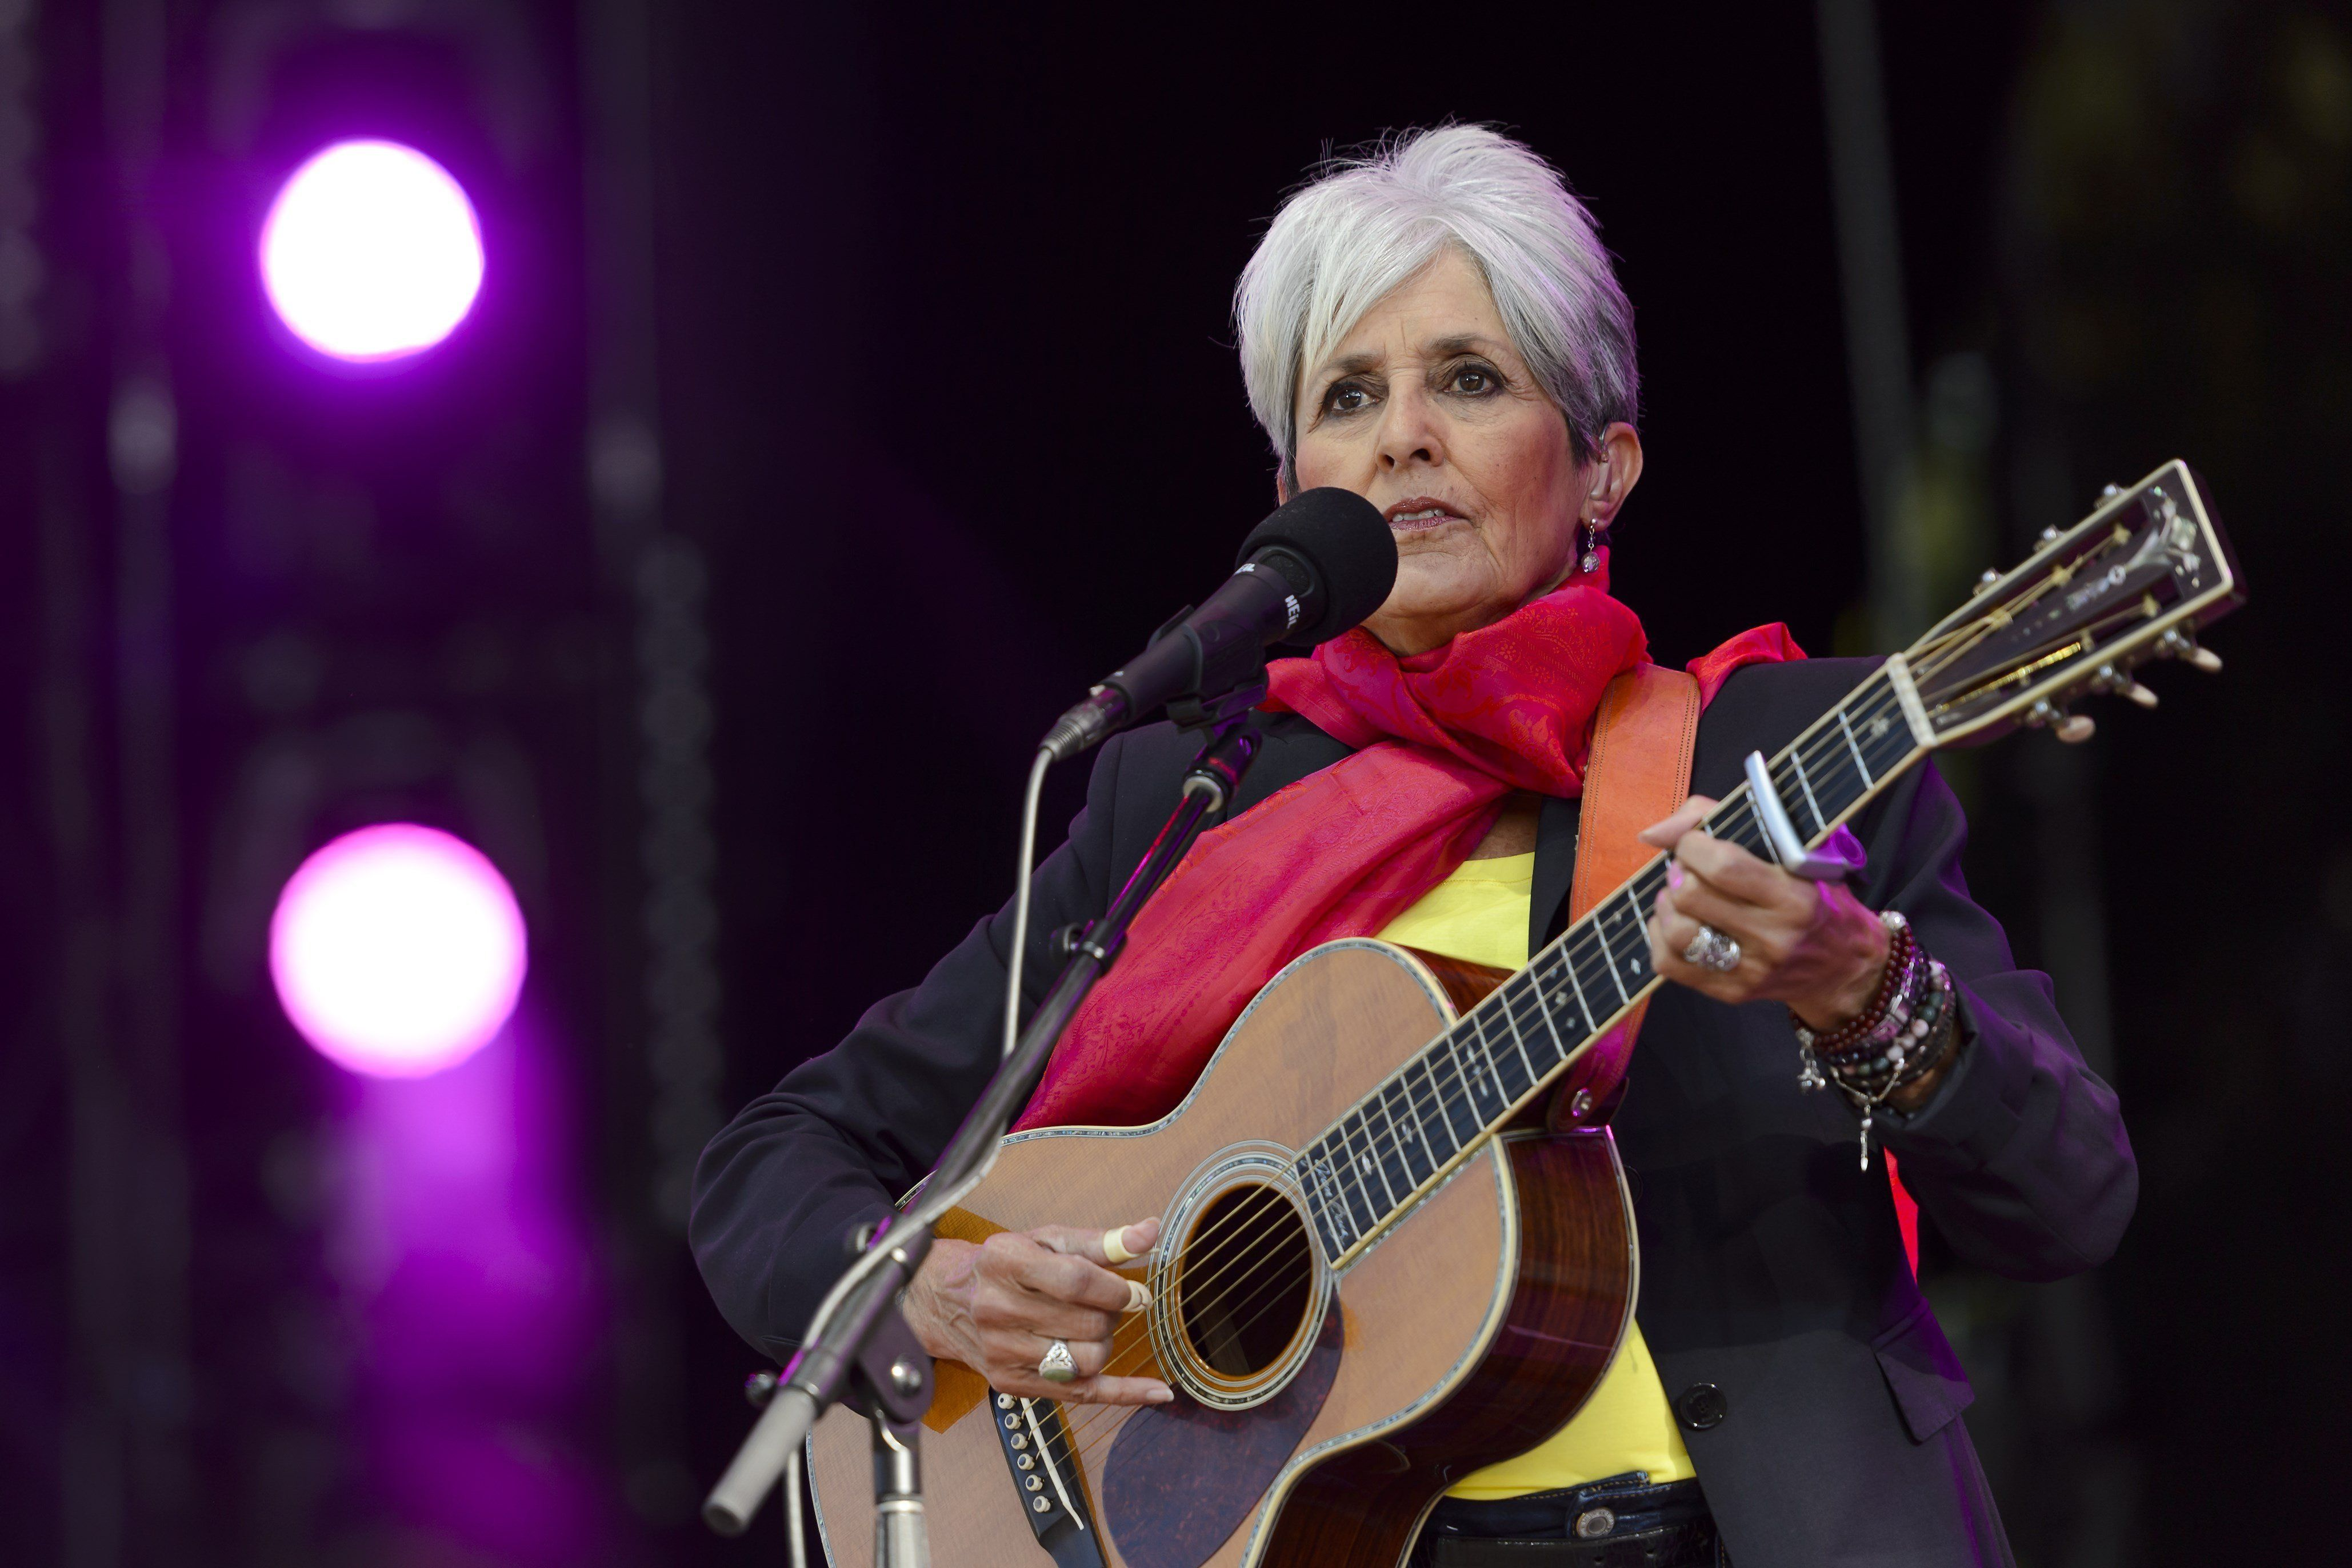 US folk singer Joan Baez performs during the 40th Paleo Festival Nyon on July 25, 2015 in Nyon, the biggest open-air festival in Switzerland and one of Europe's major musical events. AFP PHOTO / FABRICE COFFRINI        (Photo credit should read FABRICE COFFRINI/AFP/Getty Images)